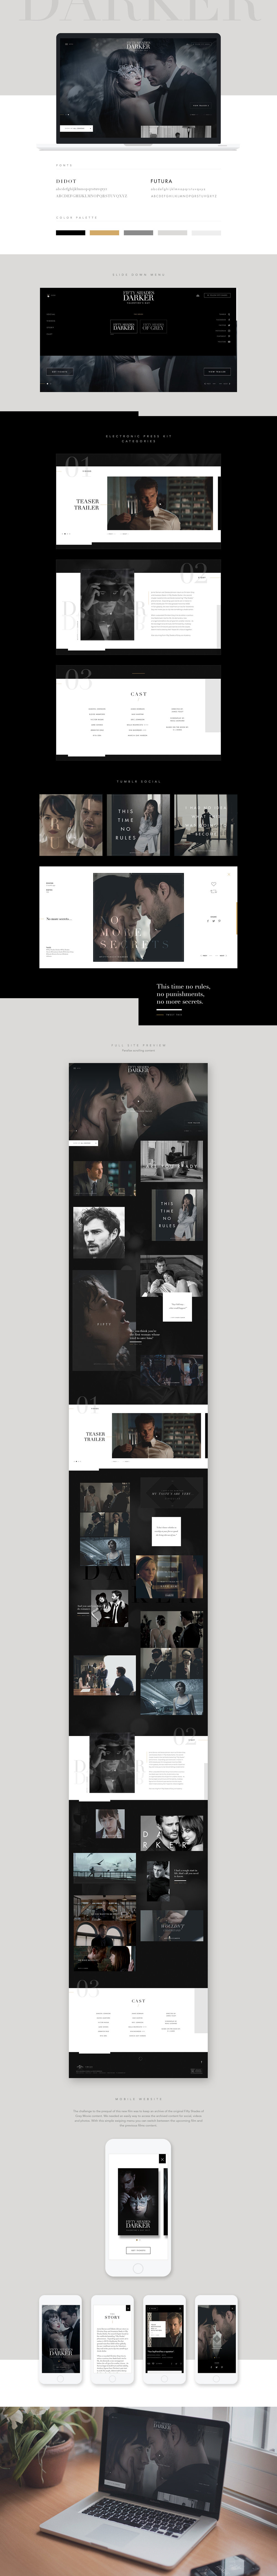 Fifty Shades Darker by keithevans.com